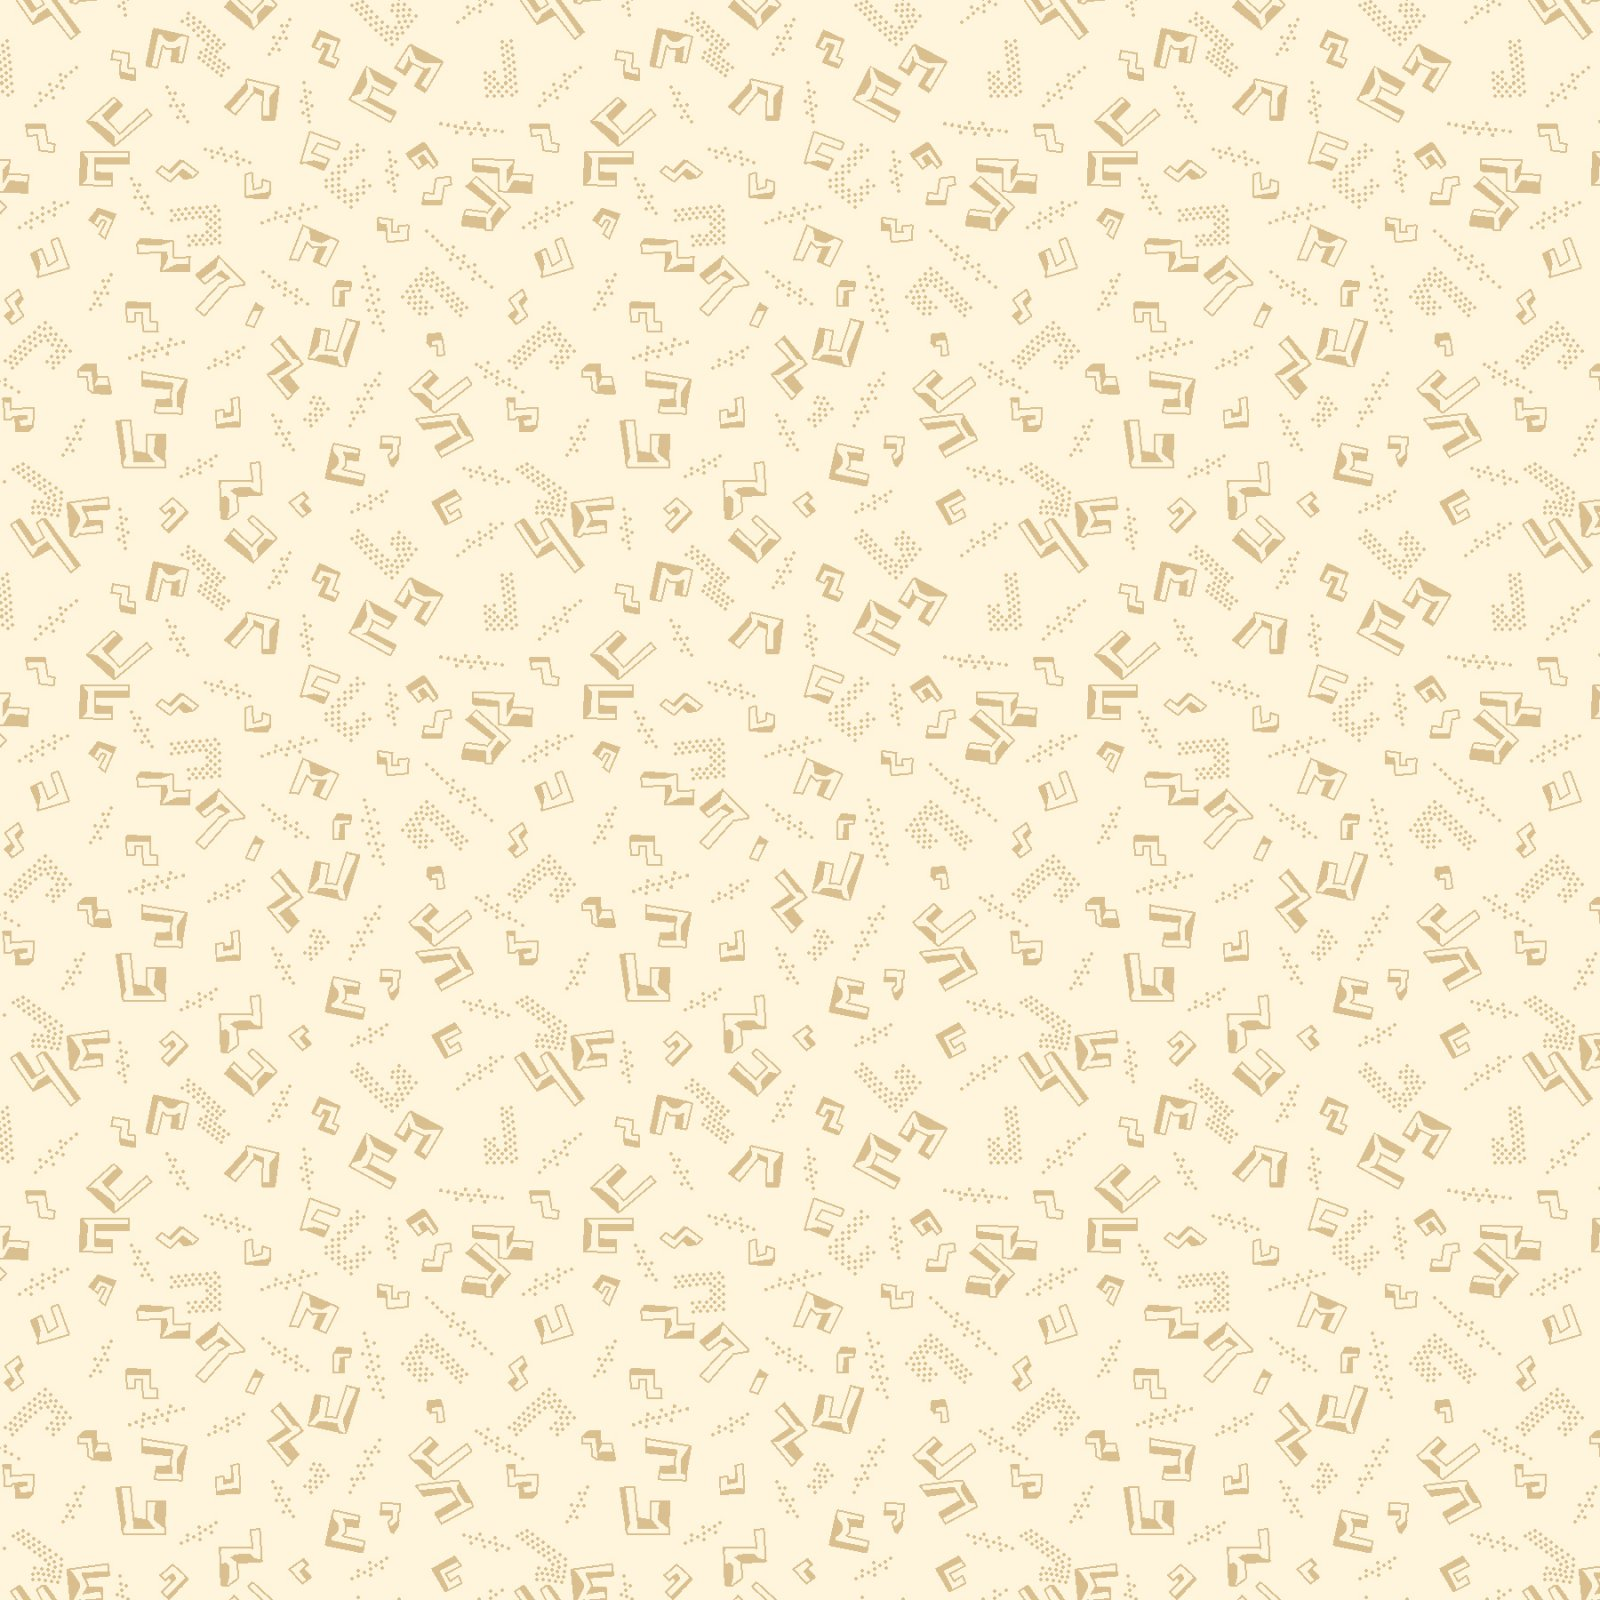 Buttermilk Winter - 2288-34 * 1/2 yard